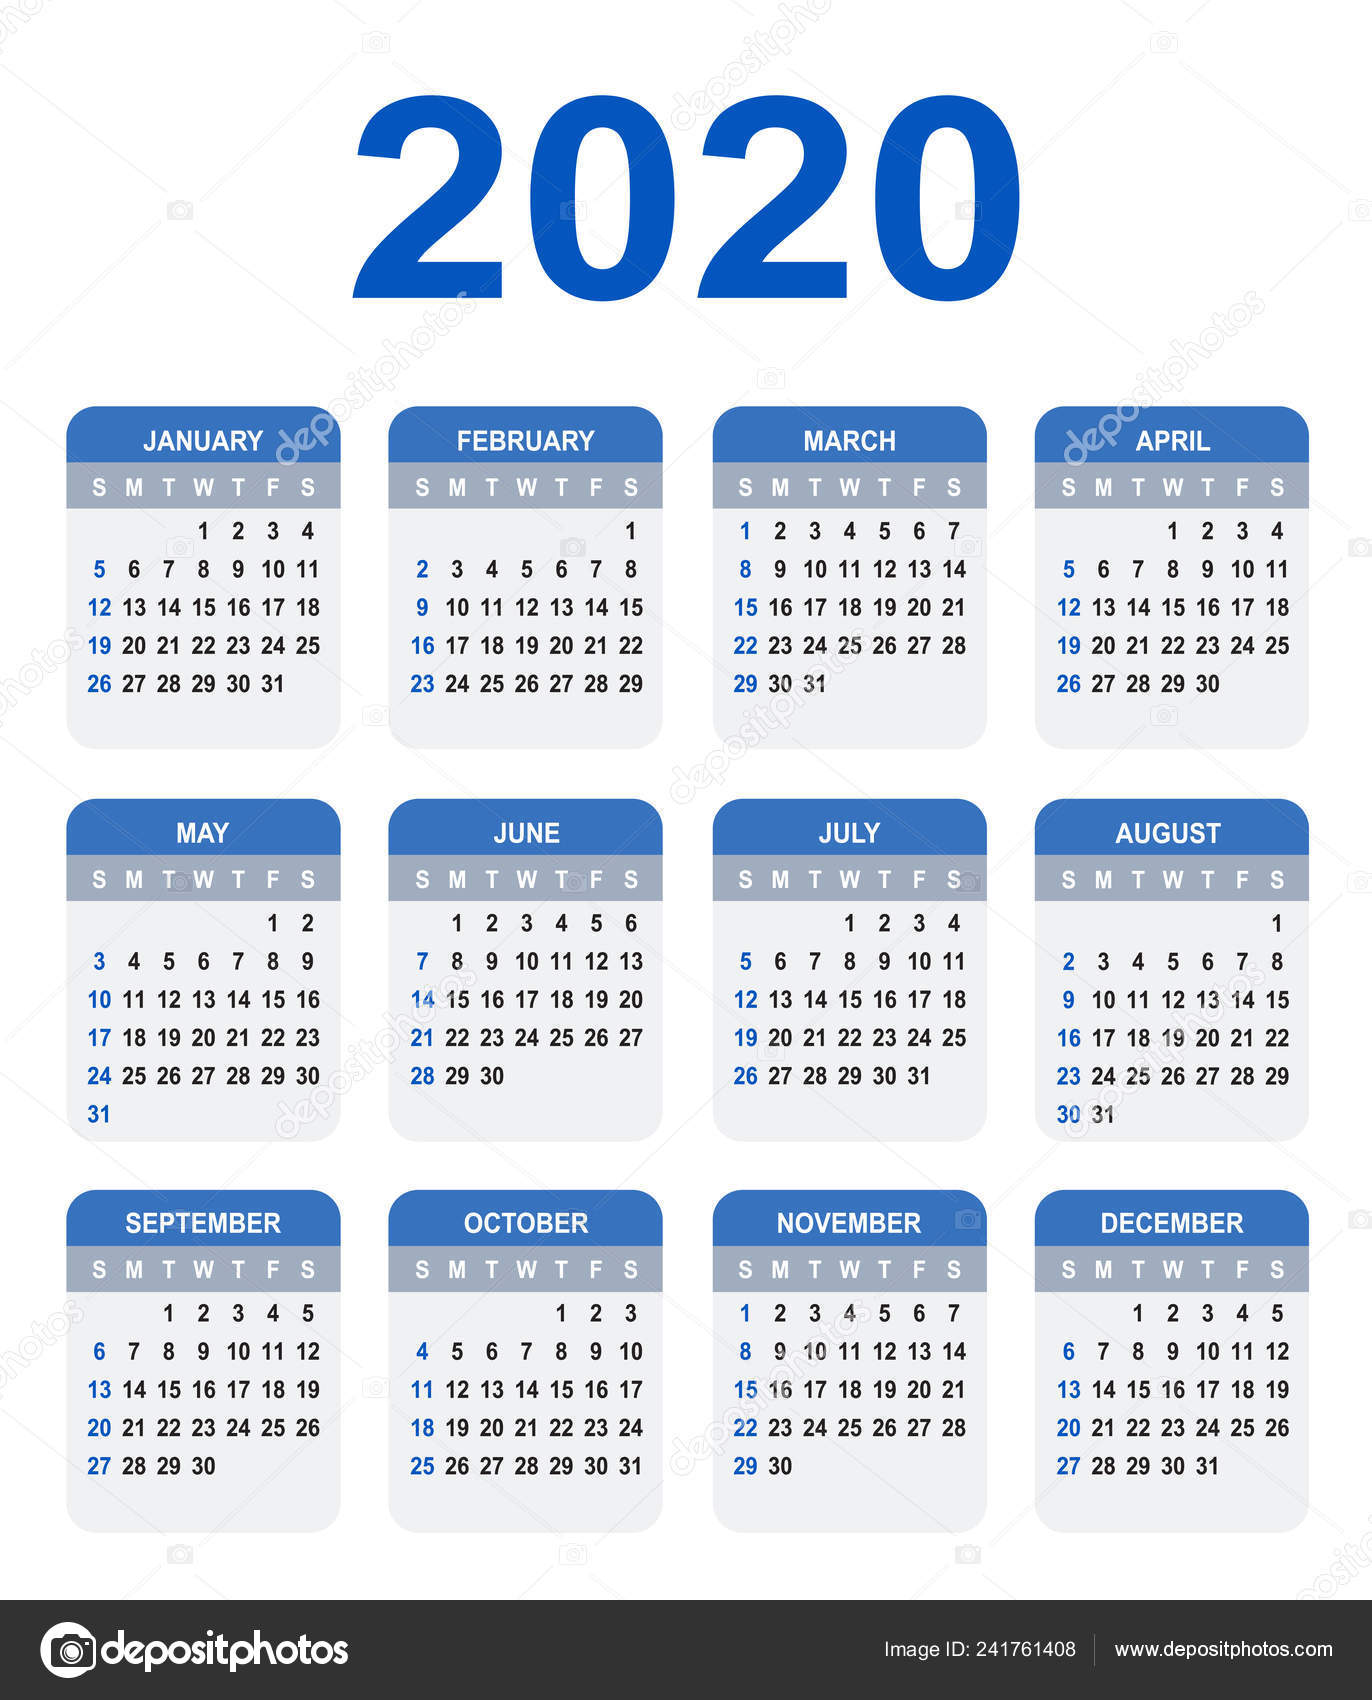 Semaines Calendrier 2020.Calendrier 2020 Semaine Commence Dimanche Couleur Base